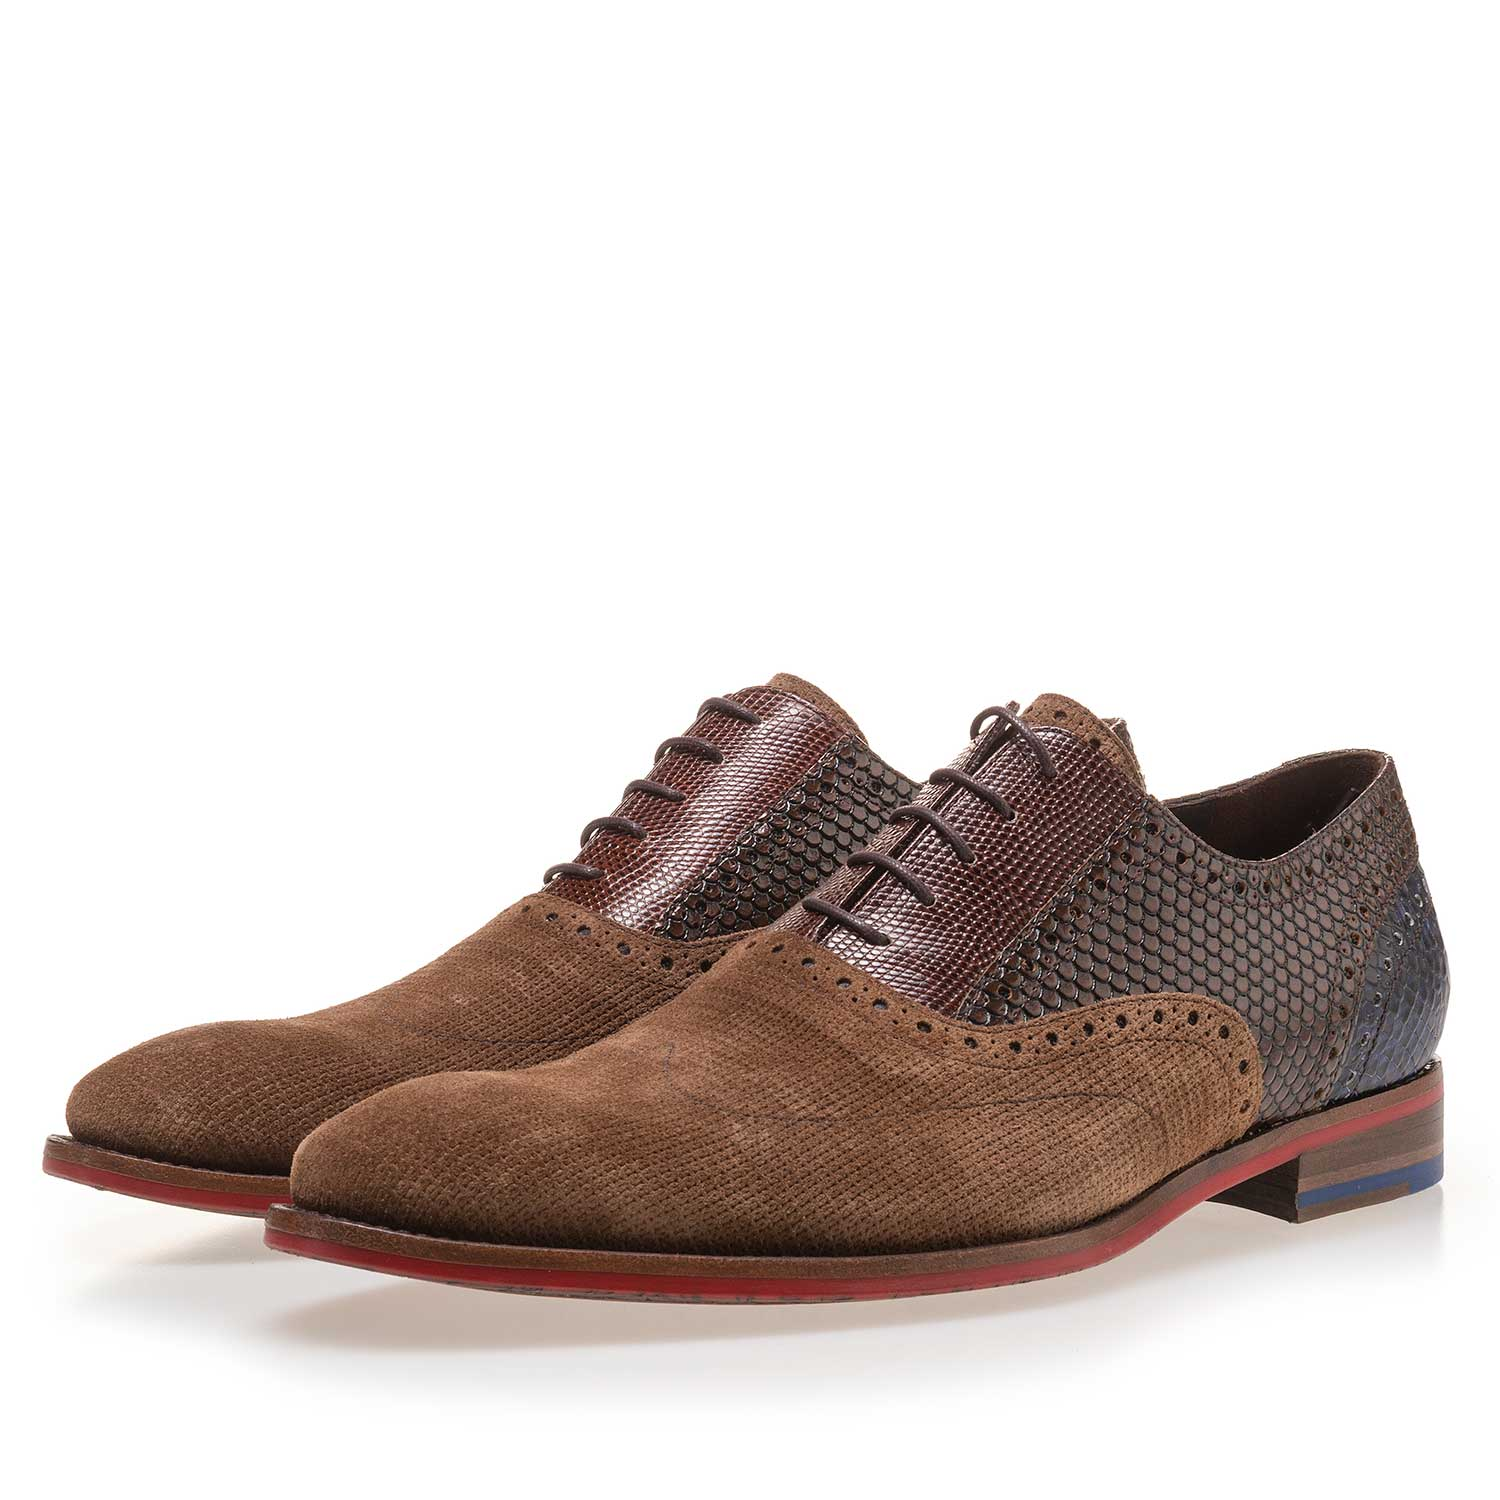 19114/03 - Light brown patterned lace shoe made of suede leather